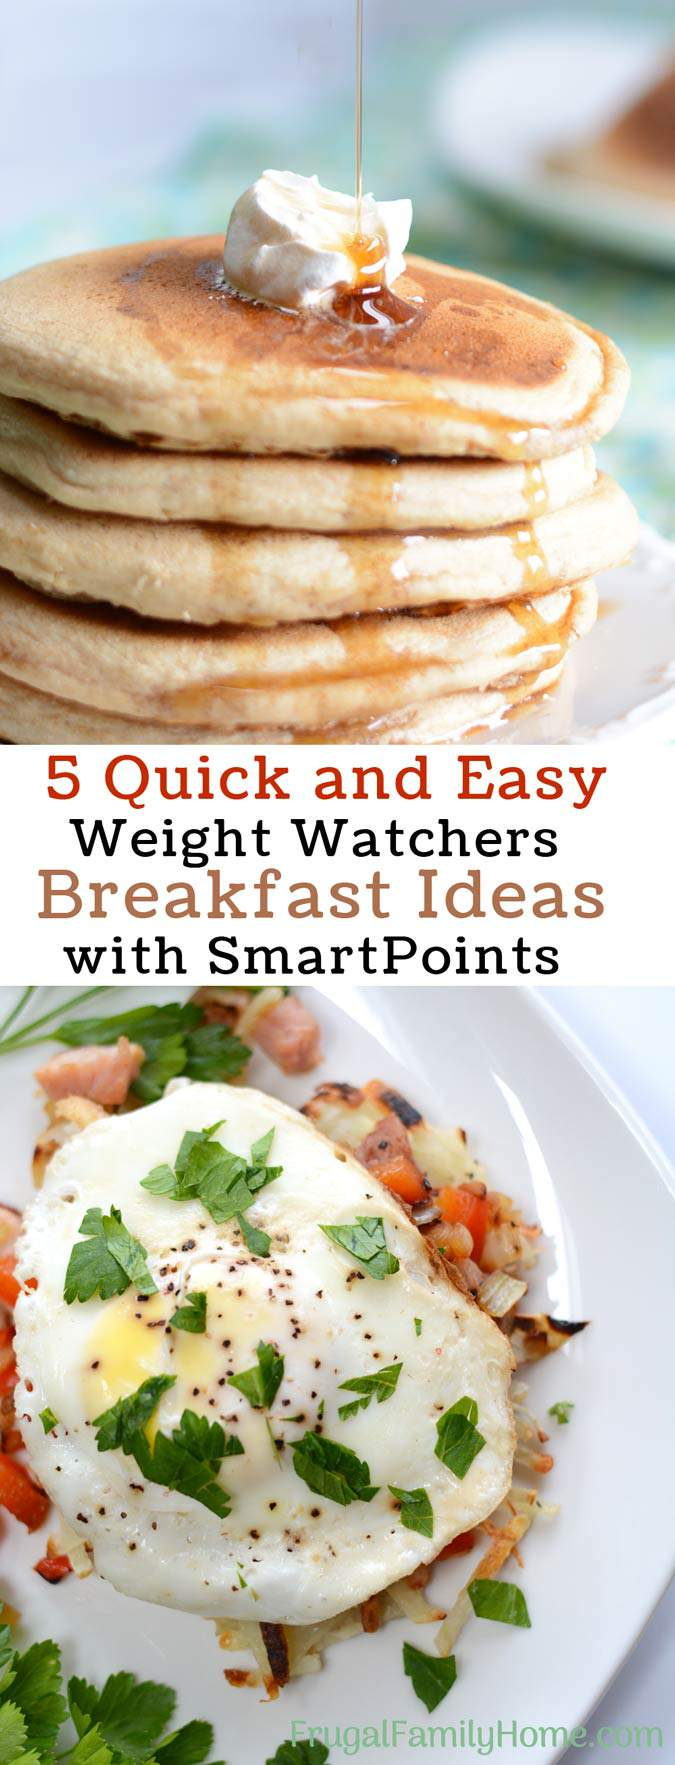 Need a few Weight Watchers breakfast ideas? I know it's easy to get stuck in a breakfast rut but these 5 recipes with points can help. All of the recipes are easy to make and give you the Smartpoints too. There are ideas with eggs, oatmeal and even make ahead smoothie recipe too. Come see which one you'd like to try first.